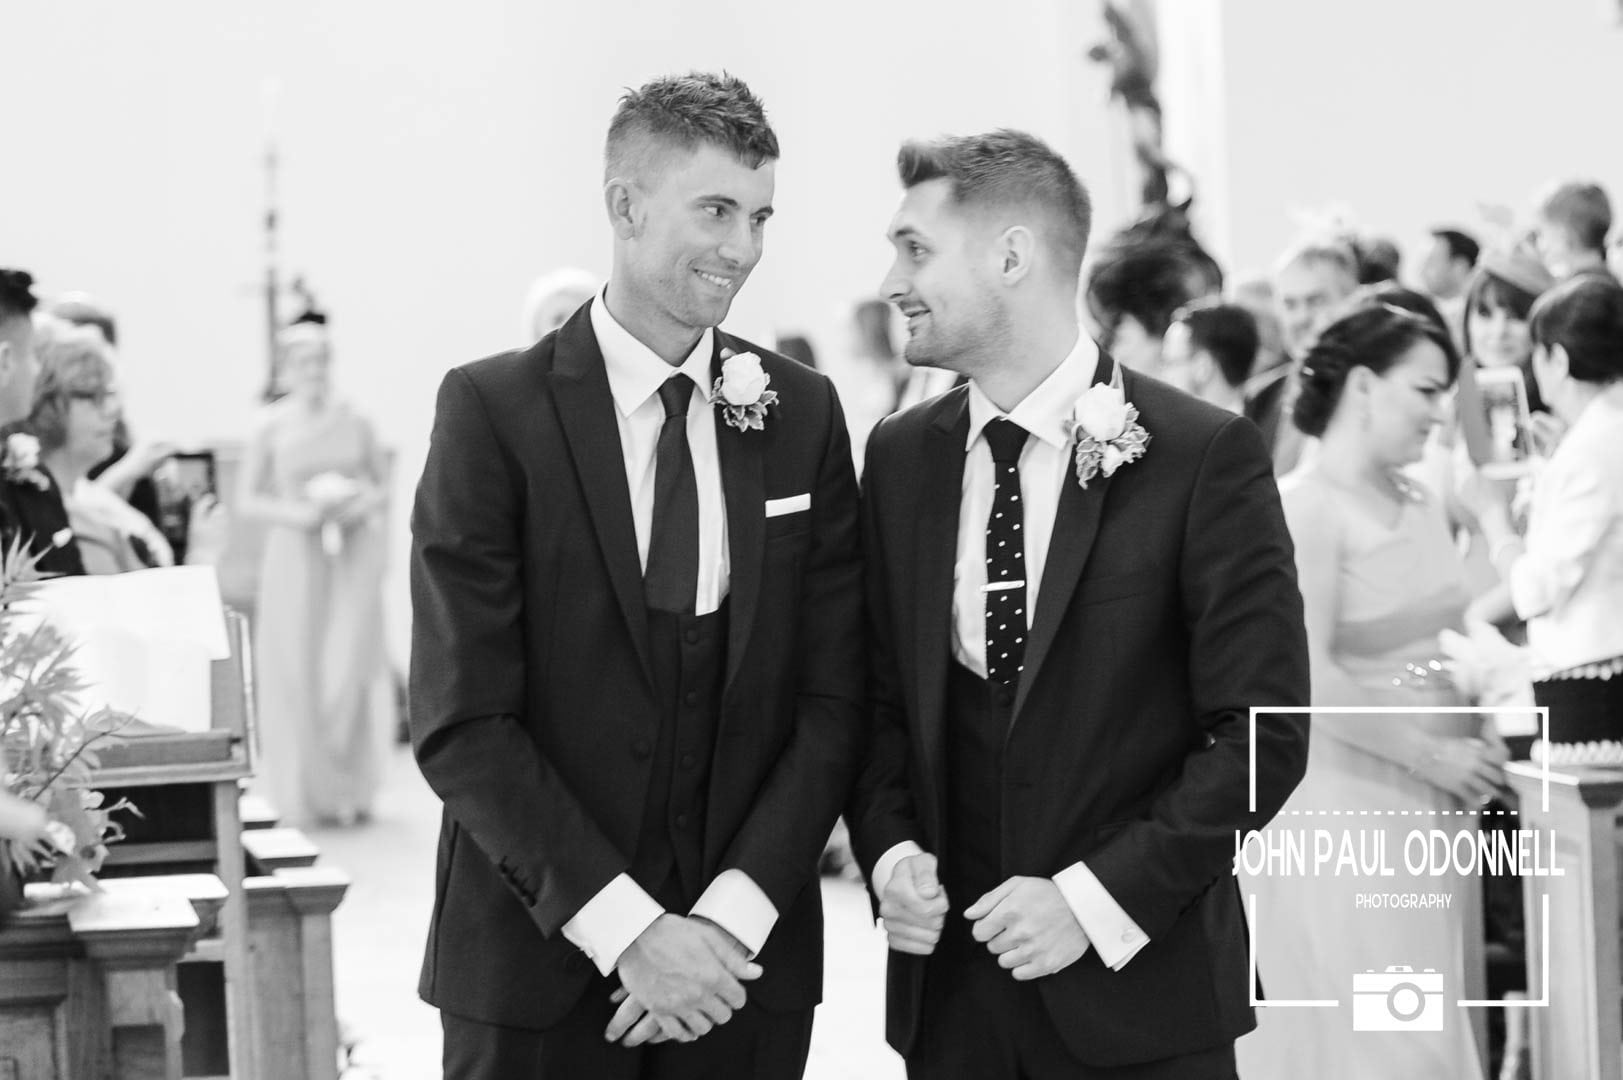 Groom and best man waiting for the bride at the church altar